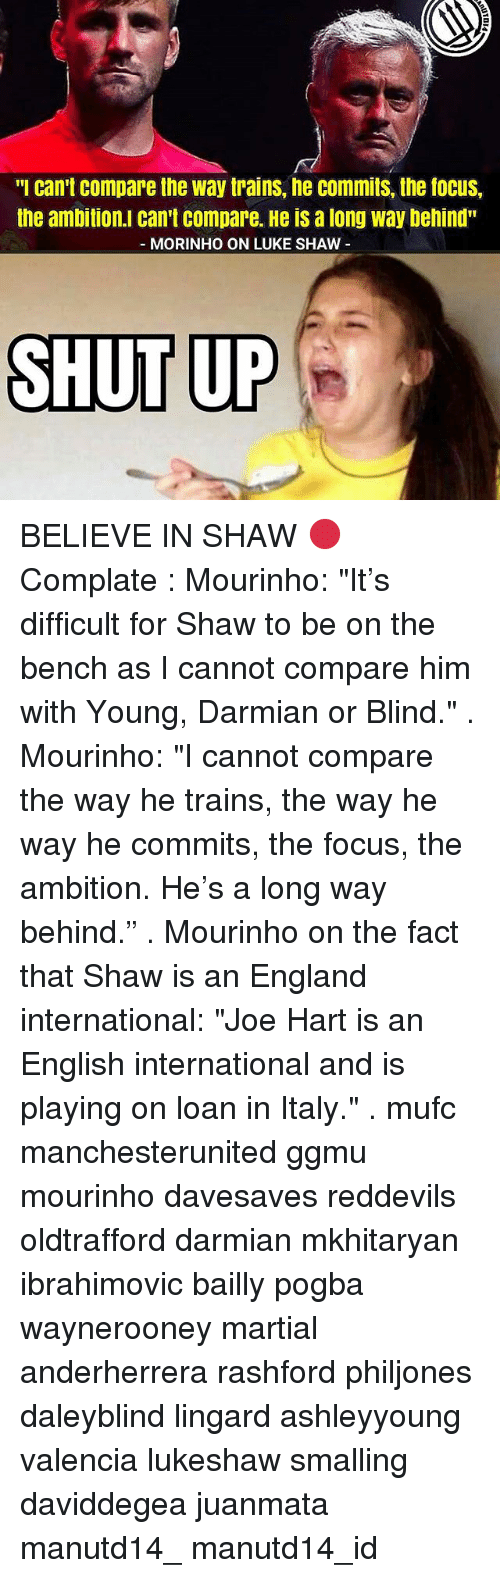 """Joe Hart: """"I can't Compare the way trains, he Commits, the focus,  the ambition. Can't Compare. He is a long way behind""""  MORINHO ON LUKE SHAW  SHUT UP BELIEVE IN SHAW 🔴 Complate : Mourinho: """"It's difficult for Shaw to be on the bench as I cannot compare him with Young, Darmian or Blind."""" . Mourinho: """"I cannot compare the way he trains, the way he way he commits, the focus, the ambition. He's a long way behind."""" . Mourinho on the fact that Shaw is an England international: """"Joe Hart is an English international and is playing on loan in Italy."""" . mufc manchesterunited ggmu mourinho davesaves reddevils oldtrafford darmian mkhitaryan ibrahimovic bailly pogba waynerooney martial anderherrera rashford philjones daleyblind lingard ashleyyoung valencia lukeshaw smalling daviddegea juanmata manutd14_ manutd14_id"""